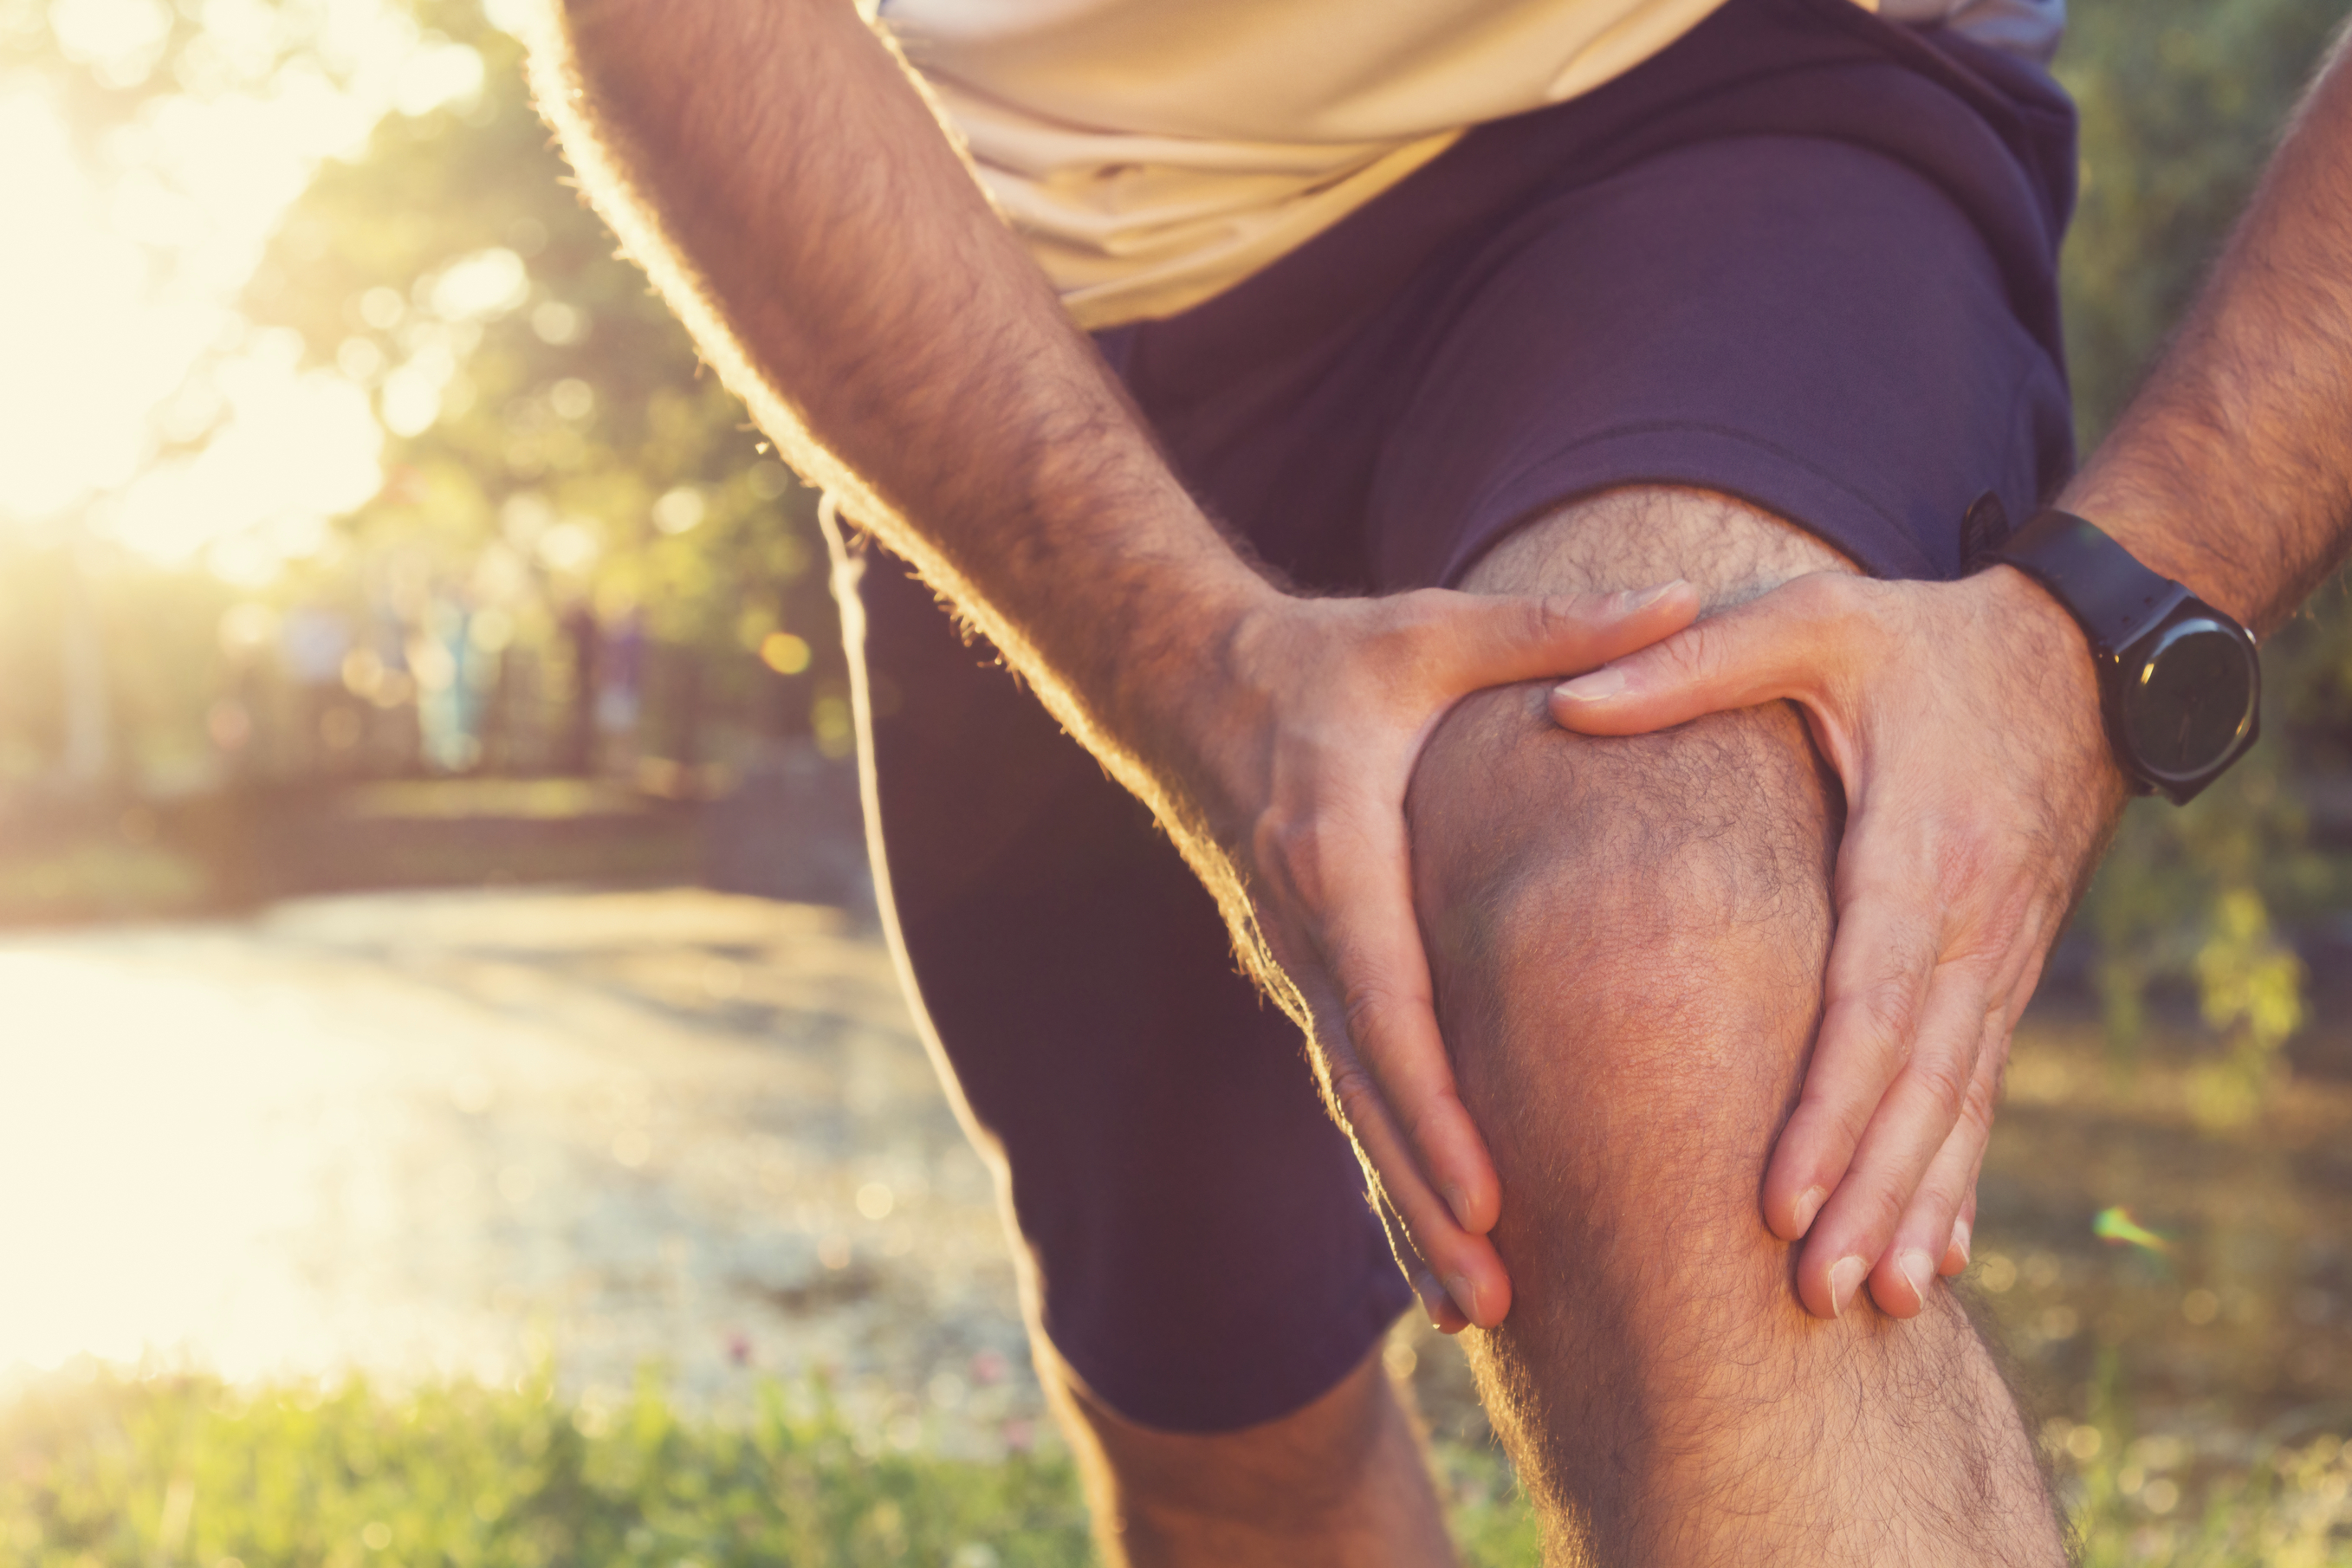 A knee injury that can be resolved by a knee surgeon in Manchester